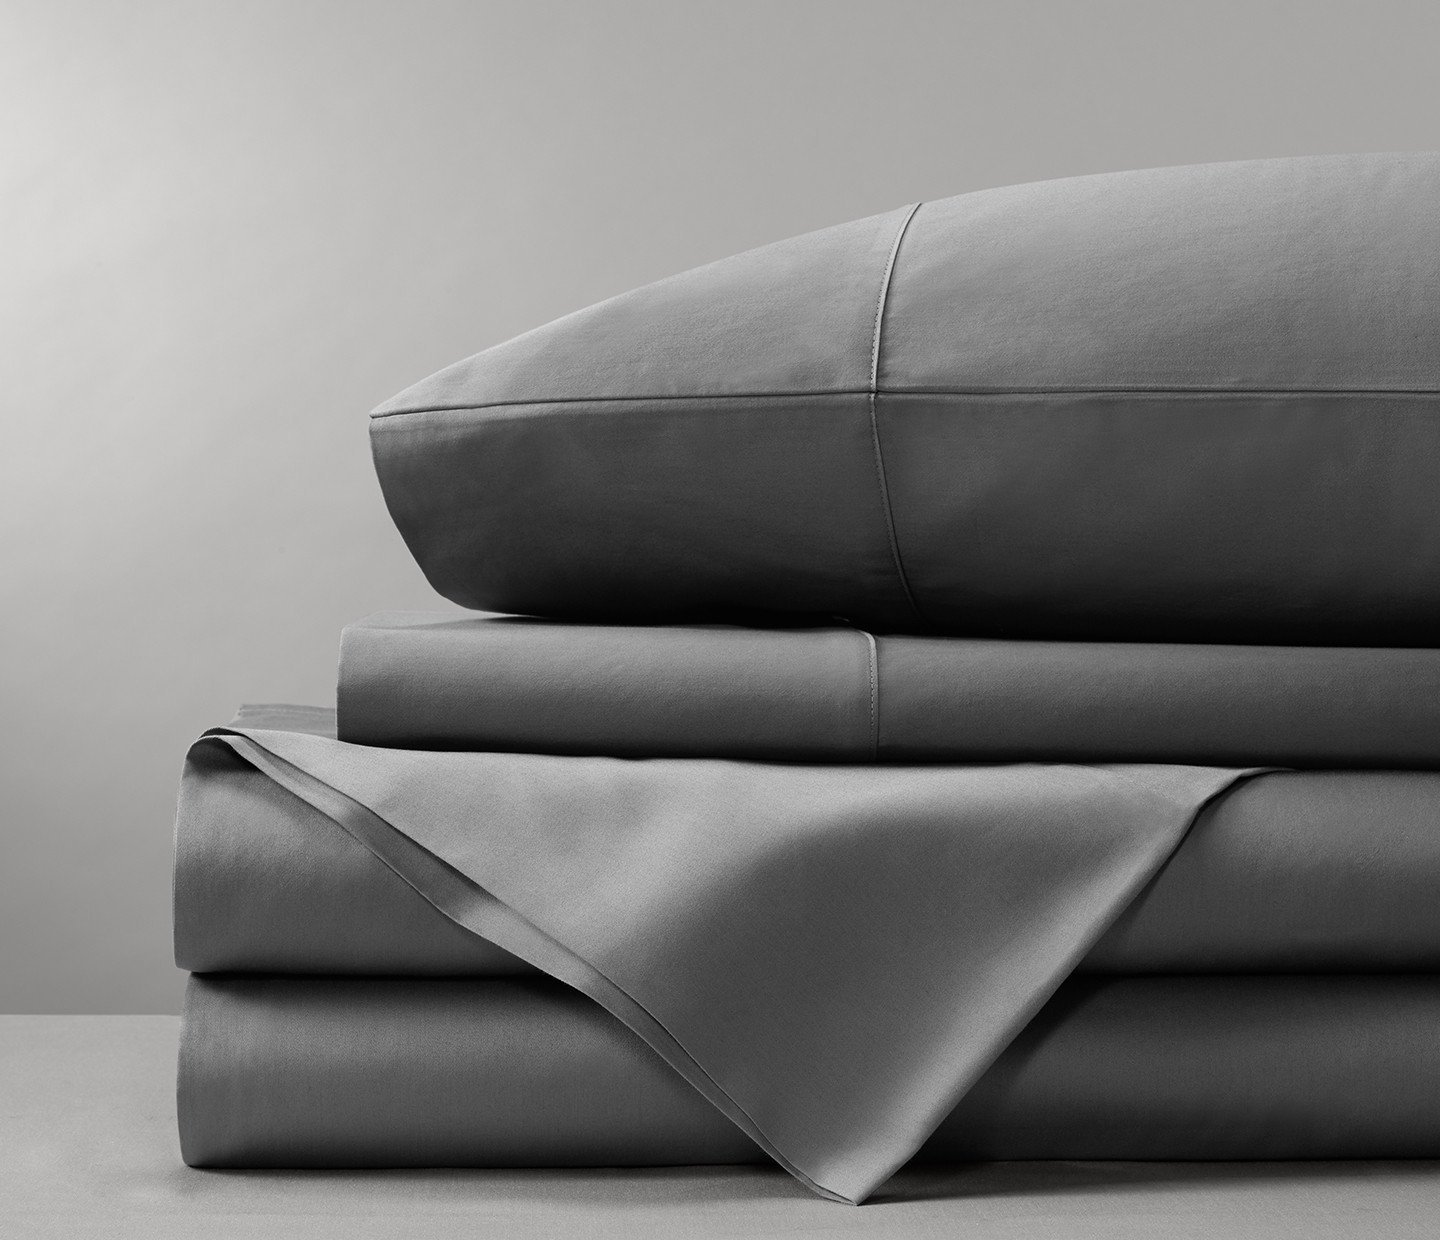 Bamboo Sheets by Bamboo Tranquility - Supreme Quality 4 Piece Bamboo Bed Sheets Set (Queen, Grey)